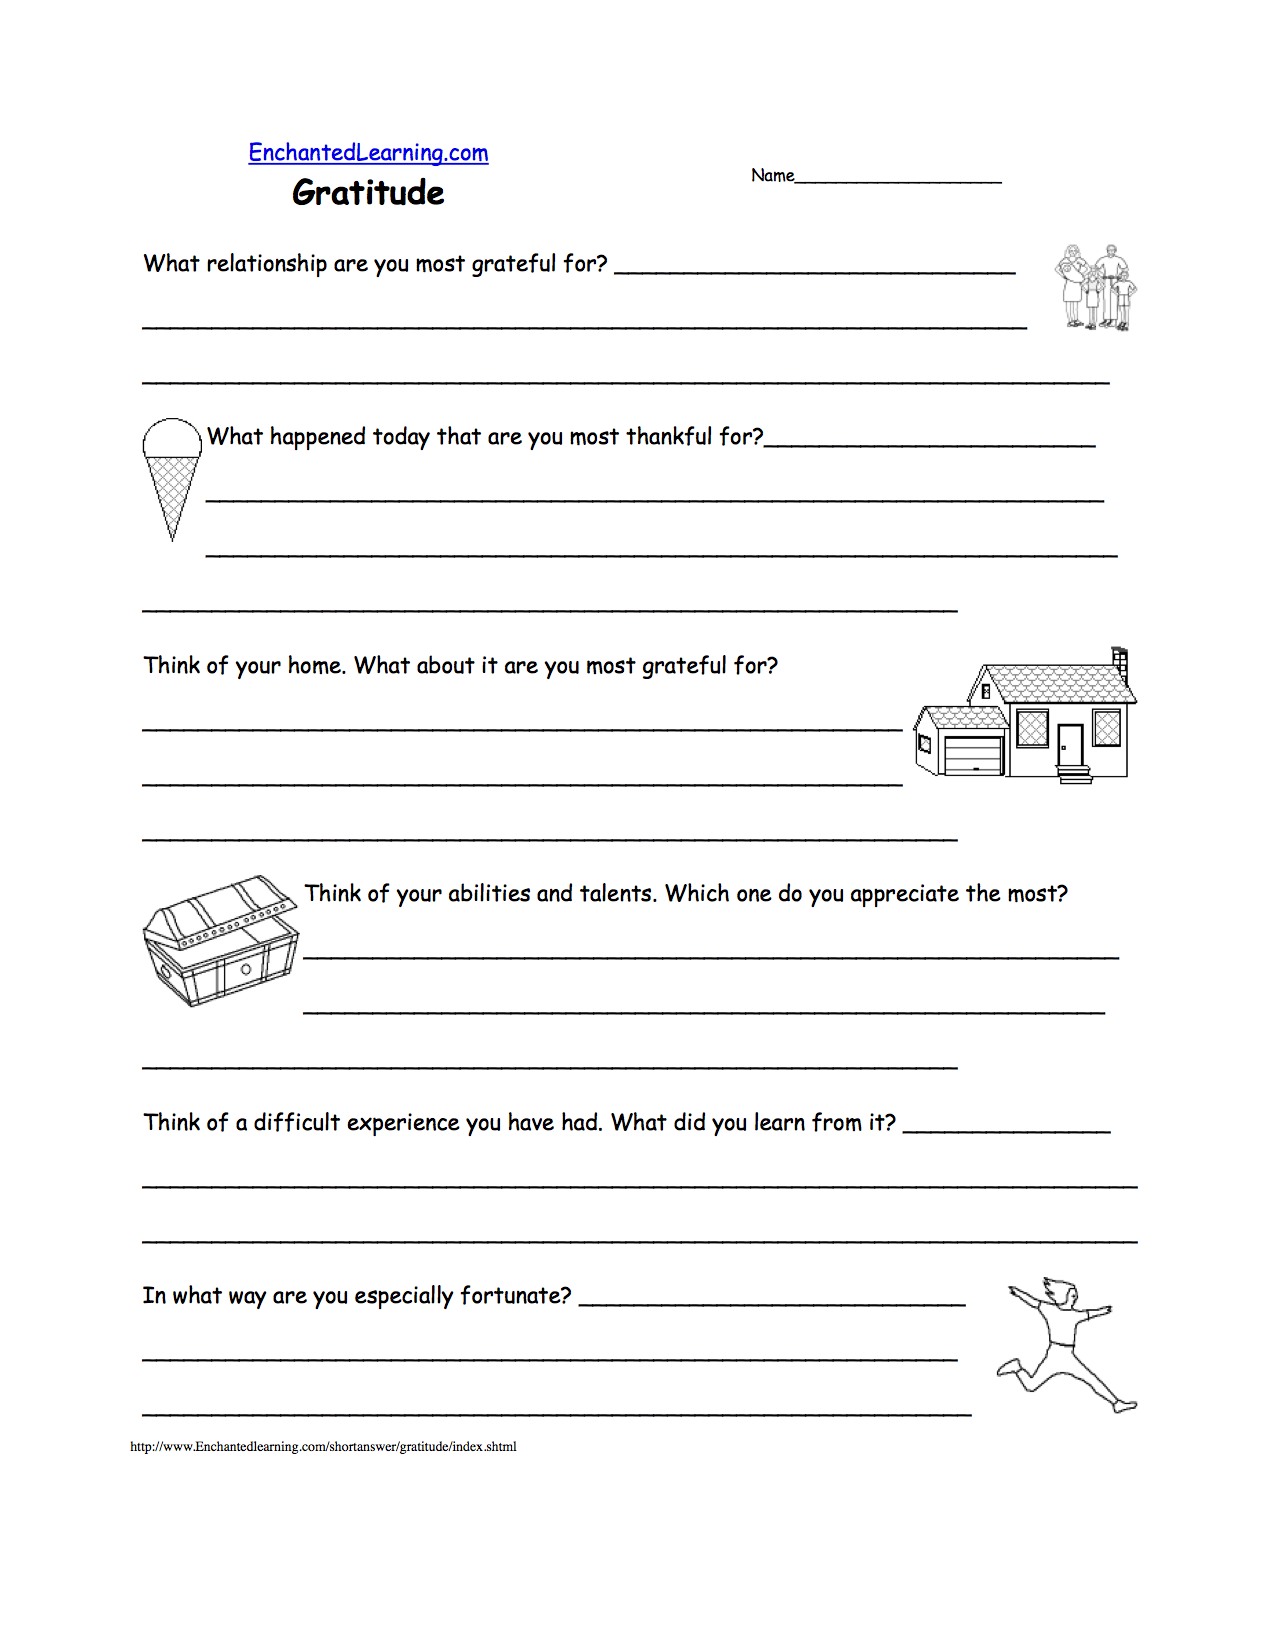 worksheet Thanksgiving Printable Worksheets thanksgiving writing worksheets enchantedlearning com thanksgiving